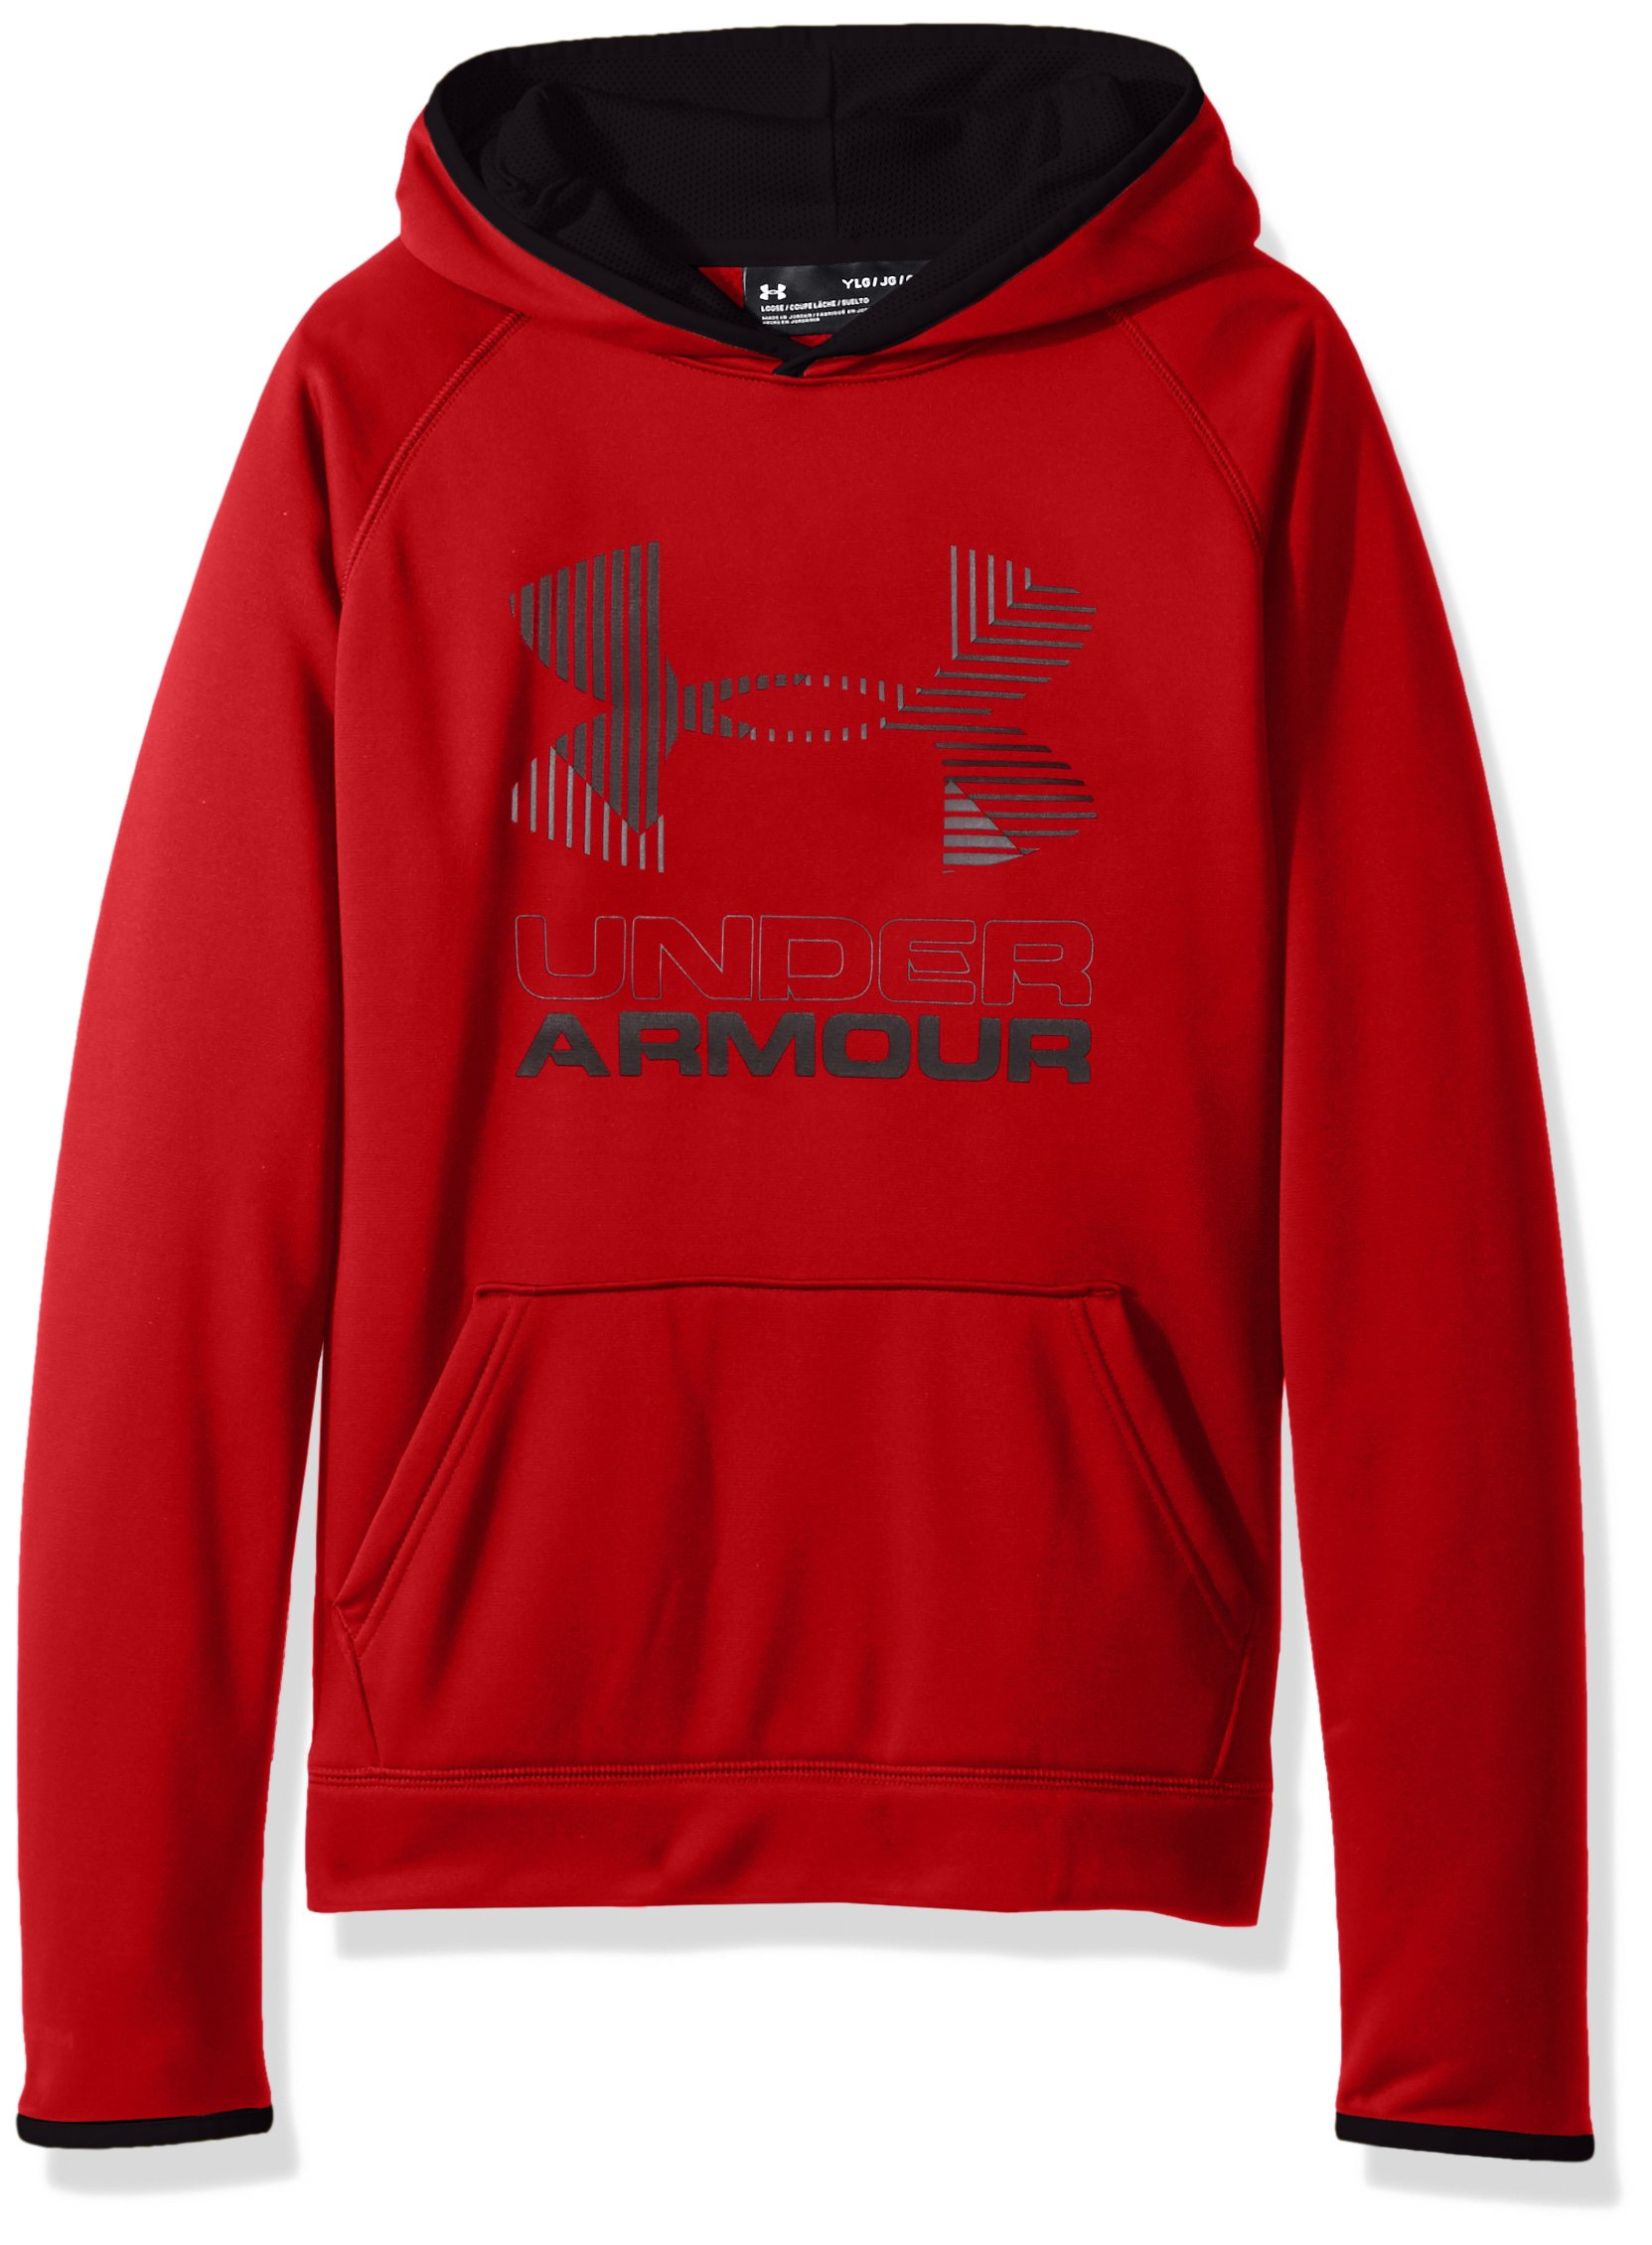 Under Armour Boys SG AF Solid Big Logo Hoodie, Red /Graphite, Youth Large by Under Armour